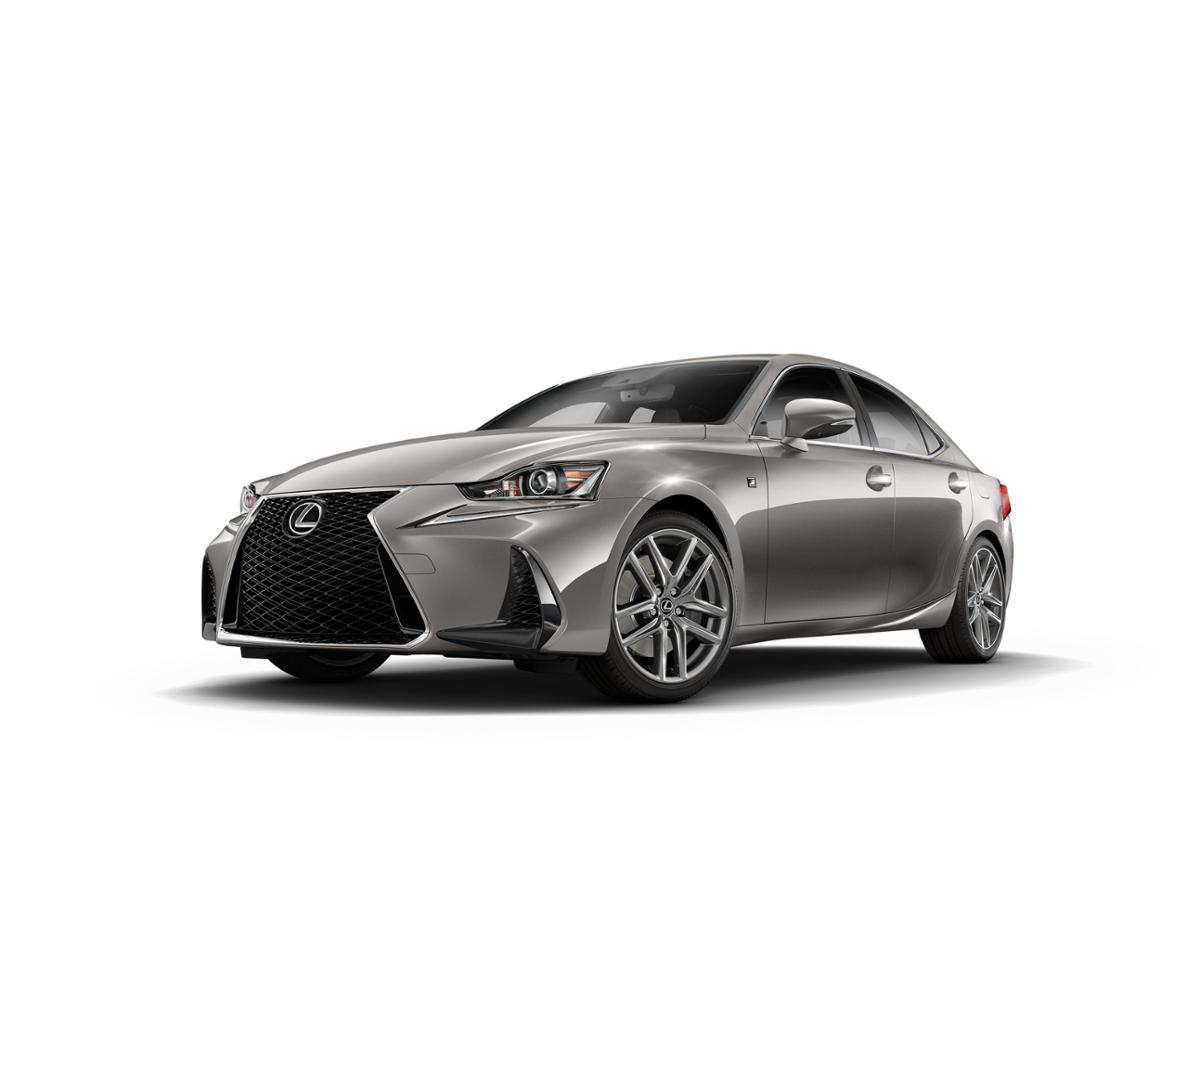 2018 Lexus IS 300 Vehicle Photo in Dallas, TX 75209